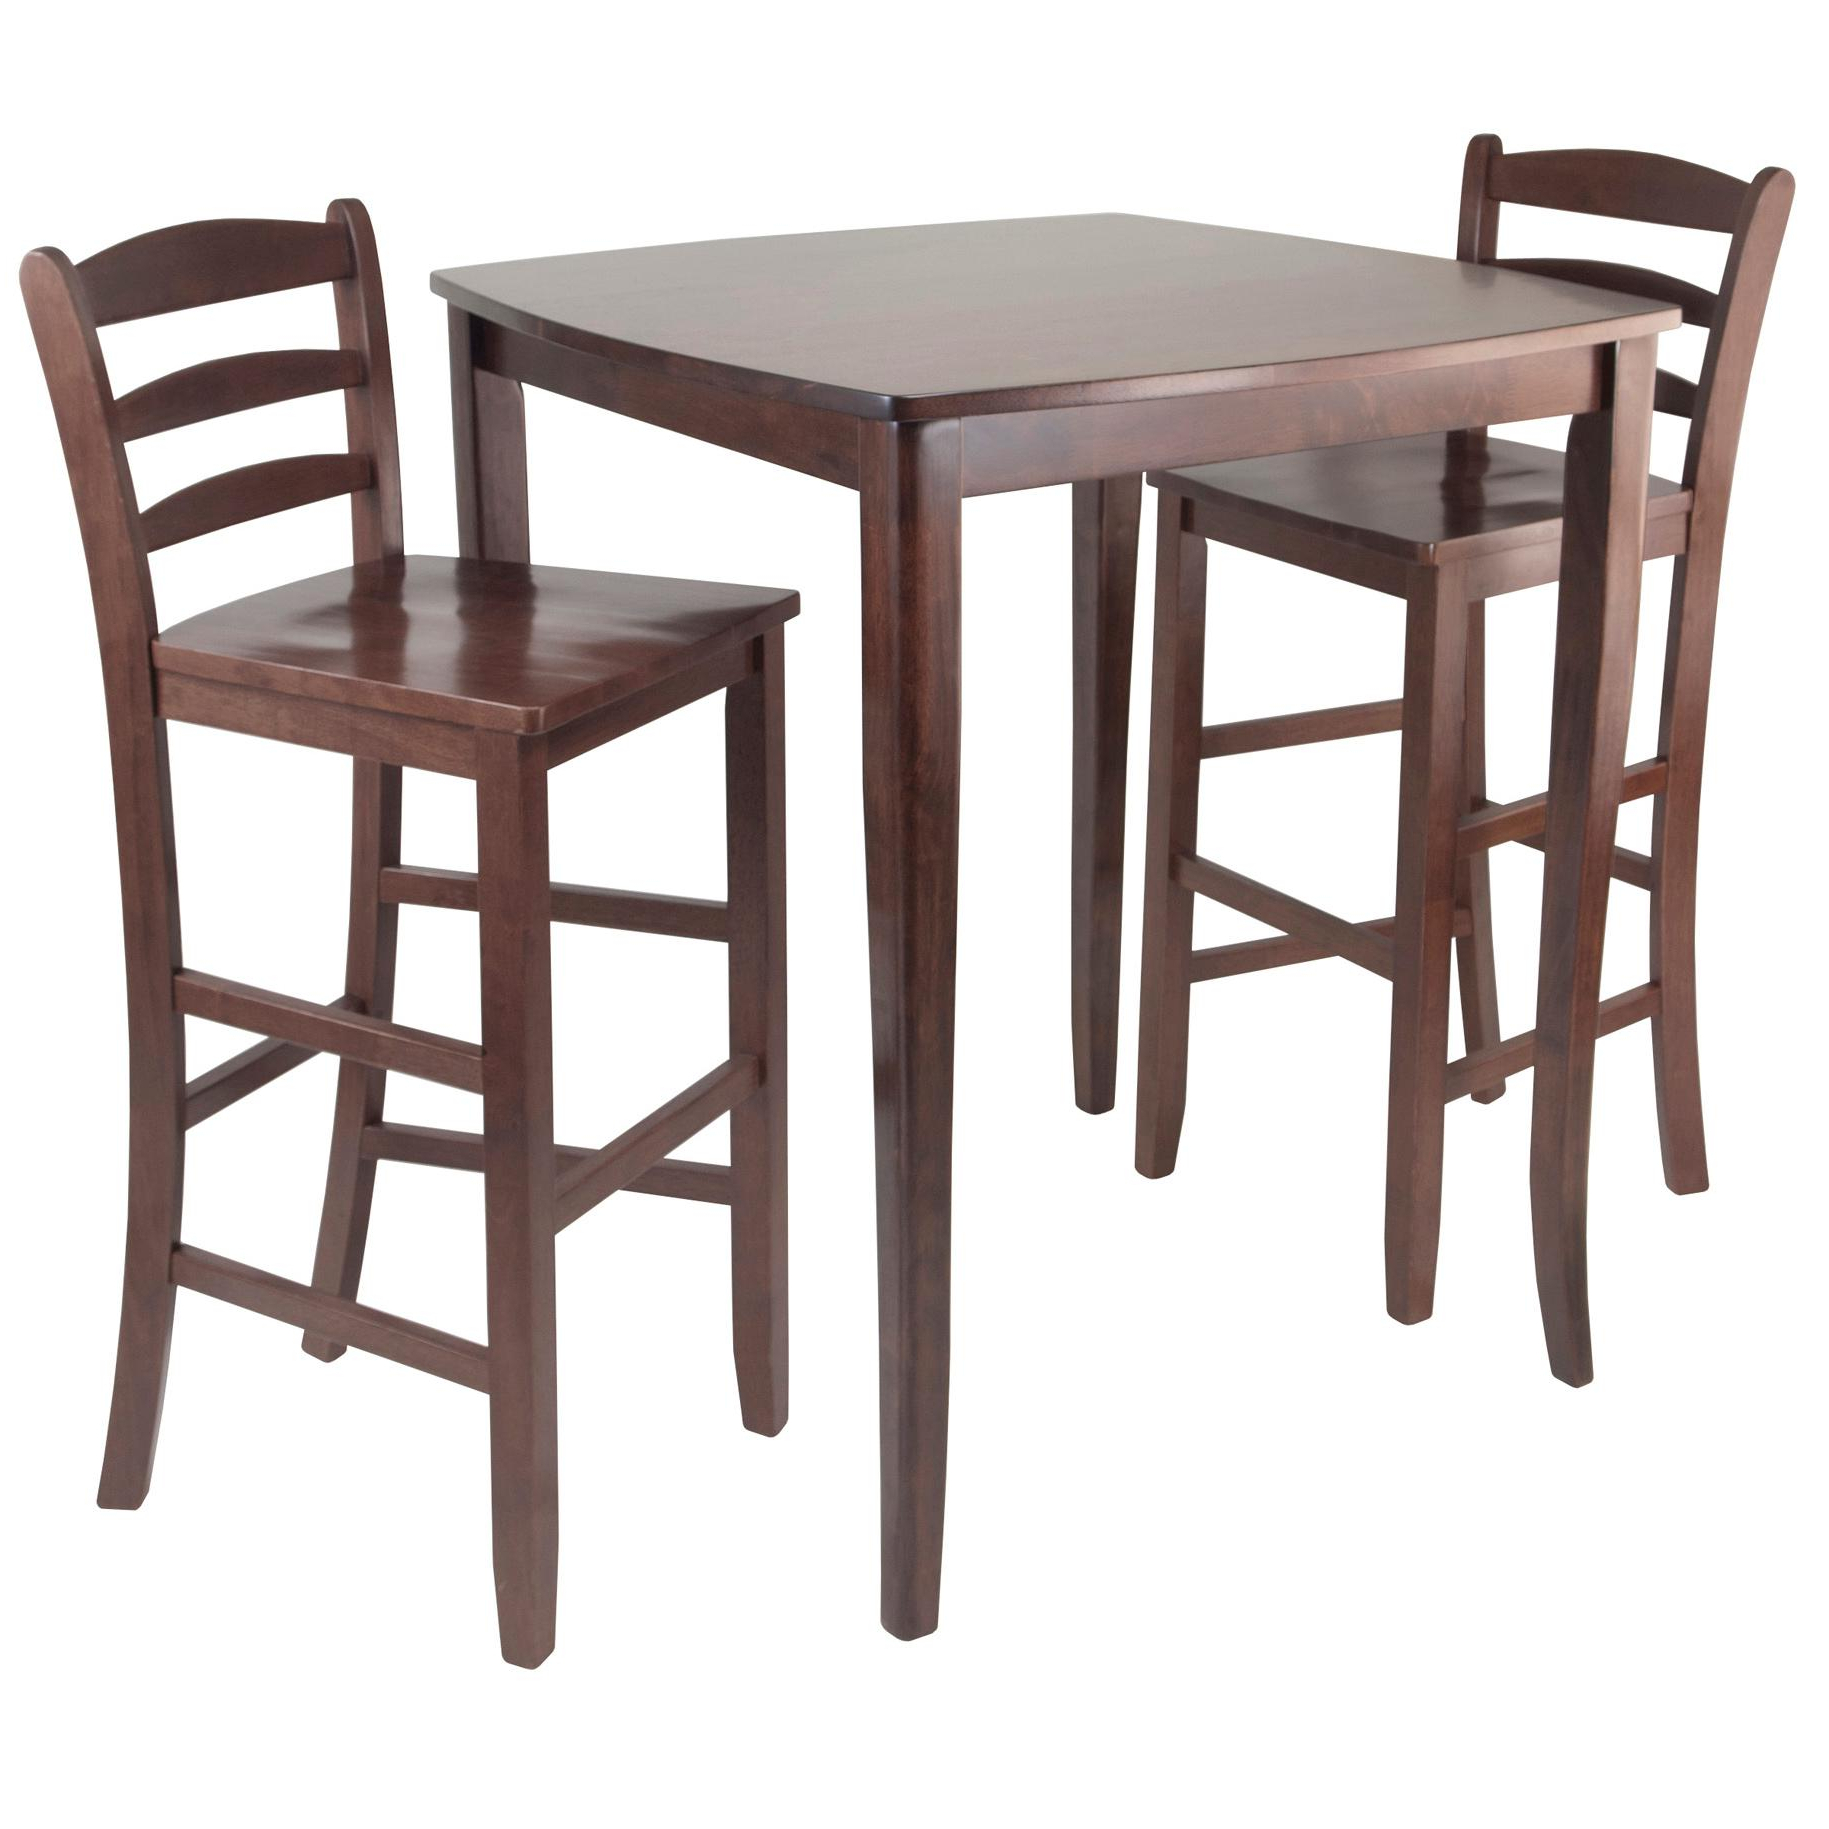 Best And Newest Winsome 3 Piece Counter Height Dining Sets In Amazon – Winsome Inglewood High/pub Dining Table With Ladder (View 5 of 25)